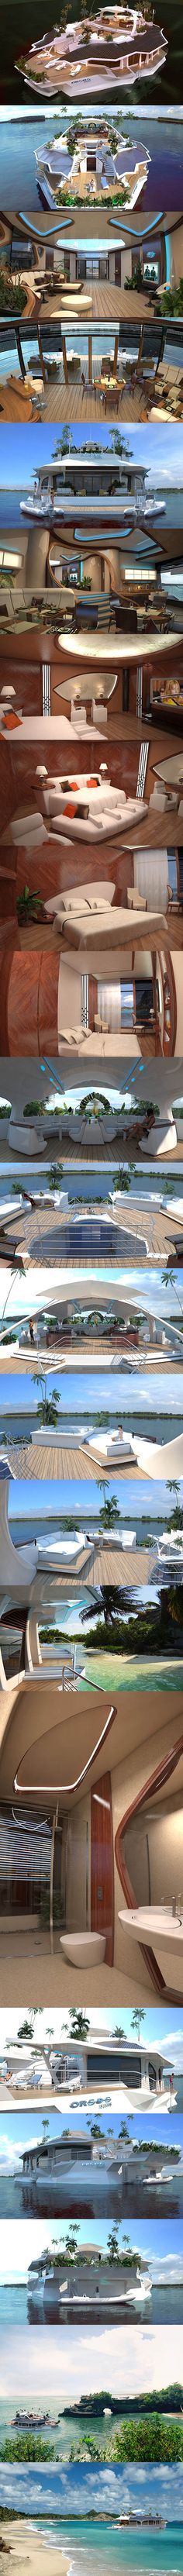 Orsos Islands is a luxury floating island that has the ability to be moved and re-anchored. While it has the vague resemblance of a boat, it's more of a fancy platform than anything.